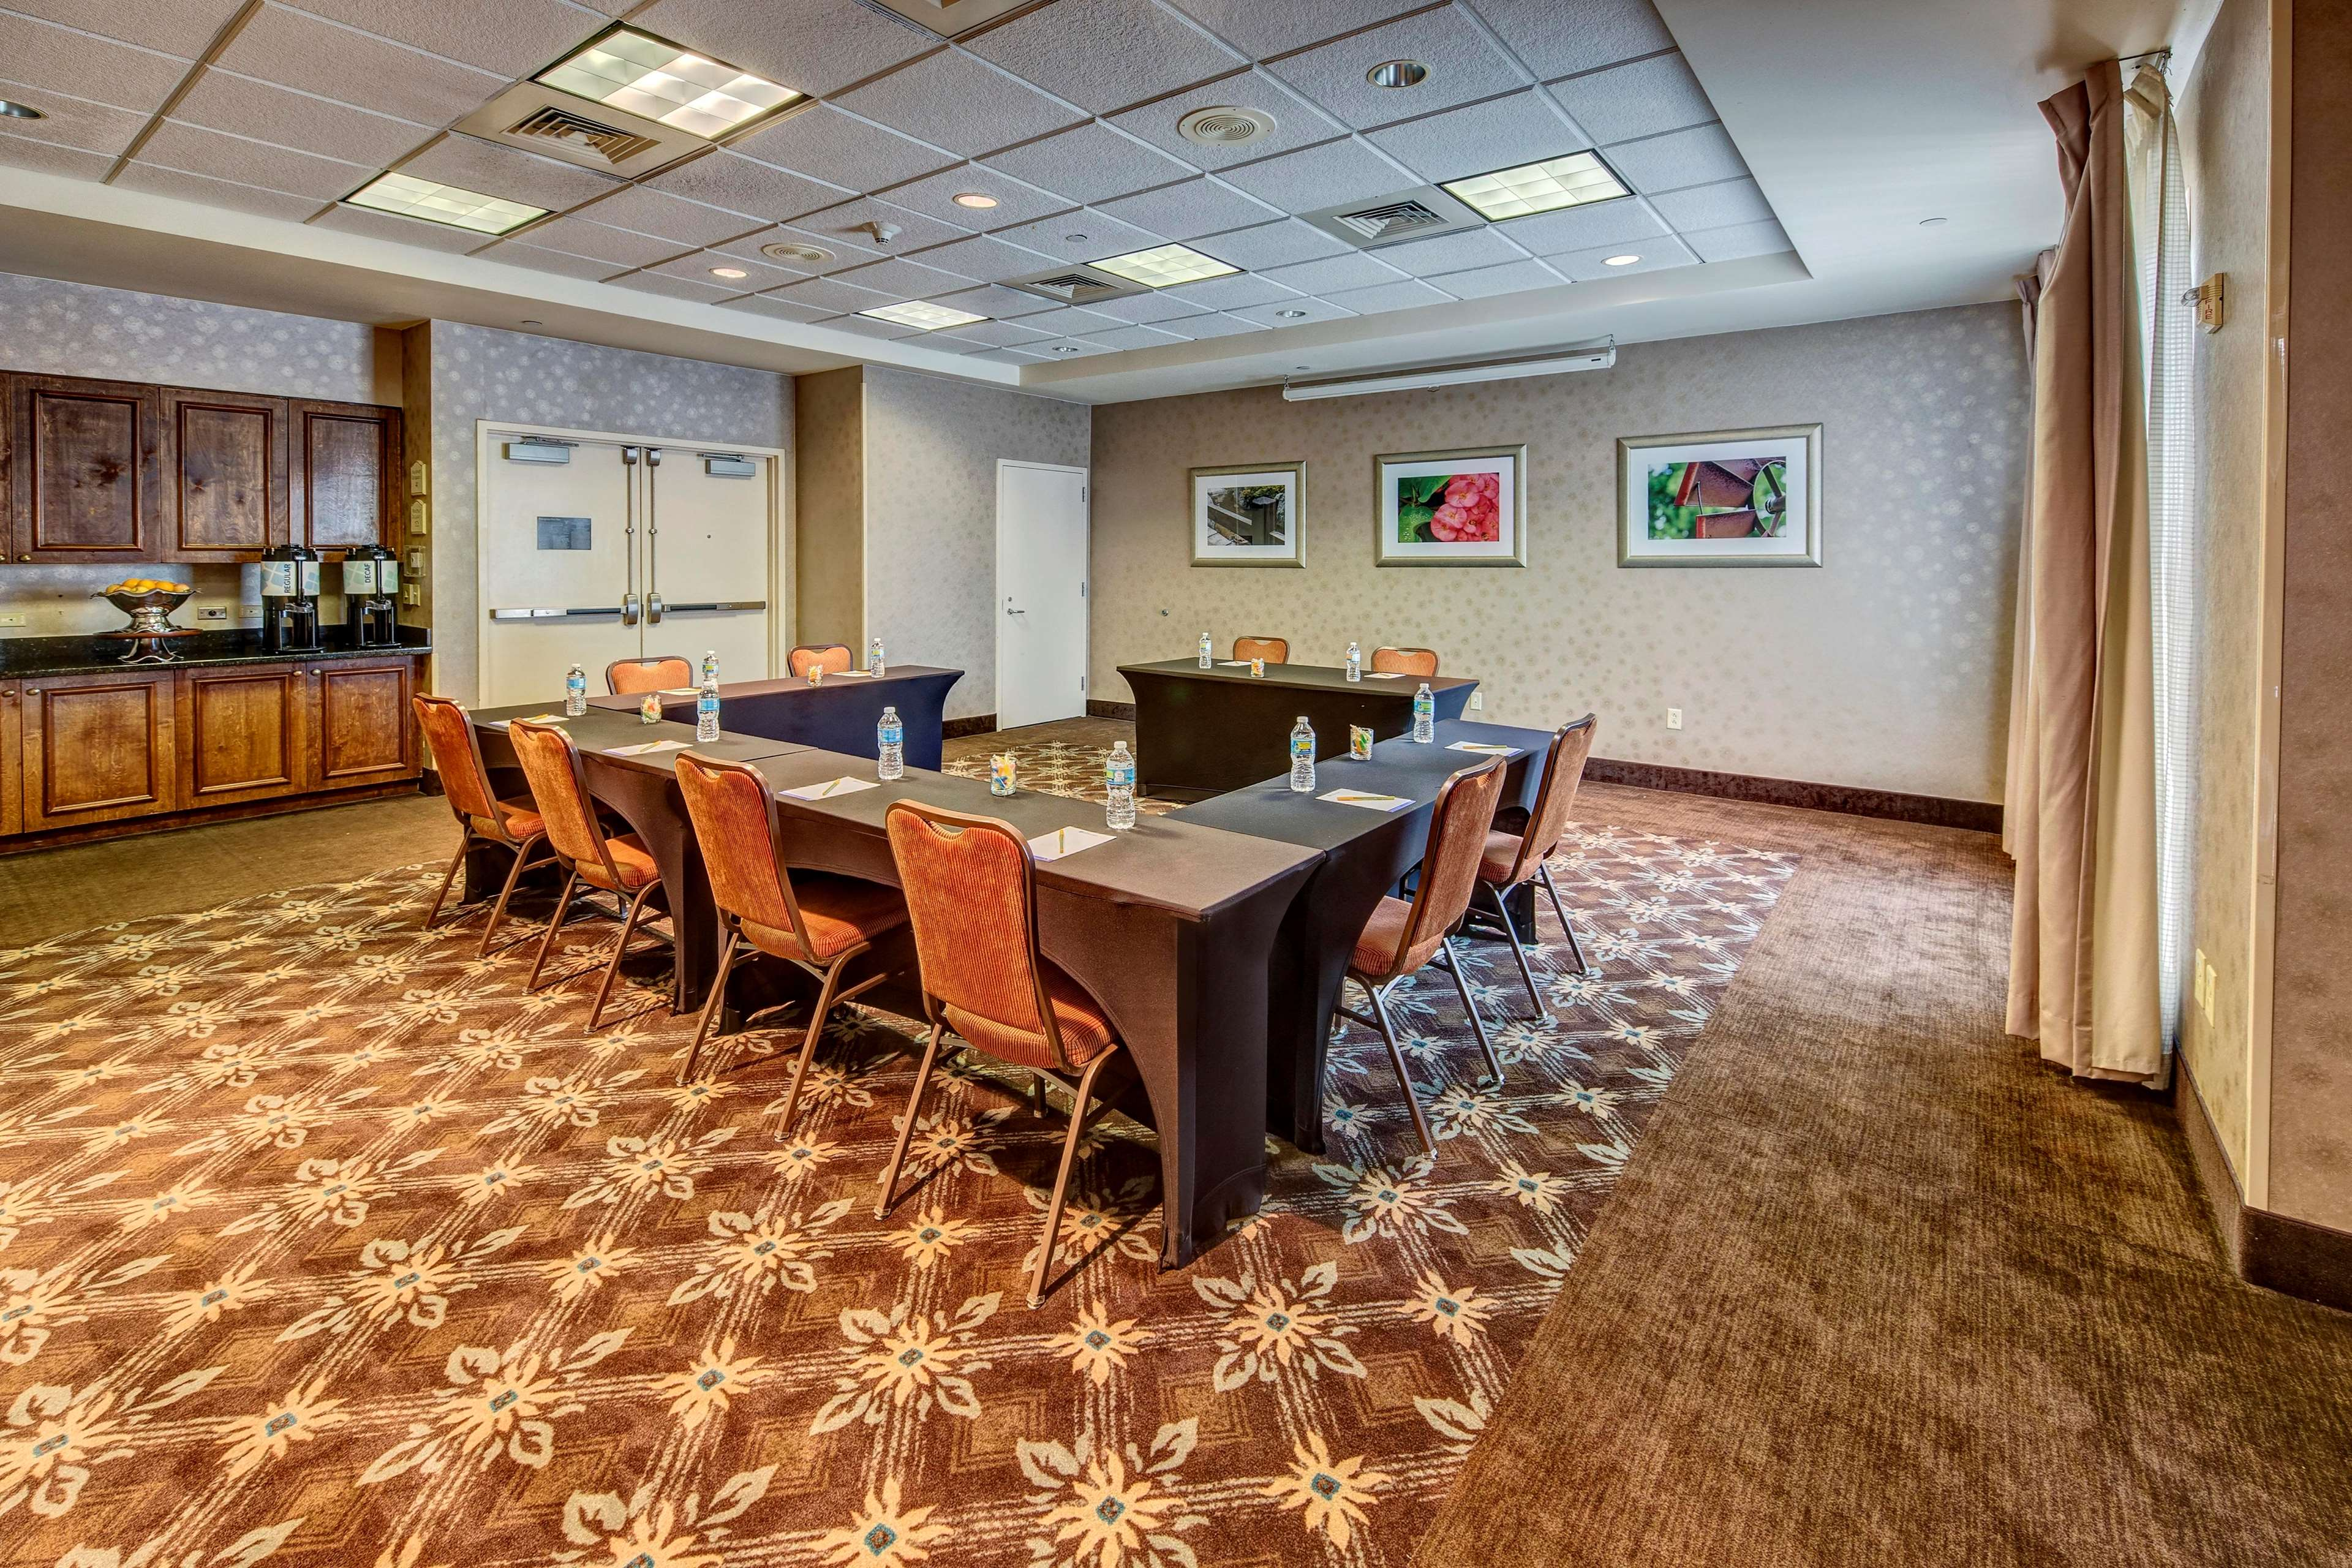 Hilton Garden Inn Houston/Bush Intercontinental Airport image 26